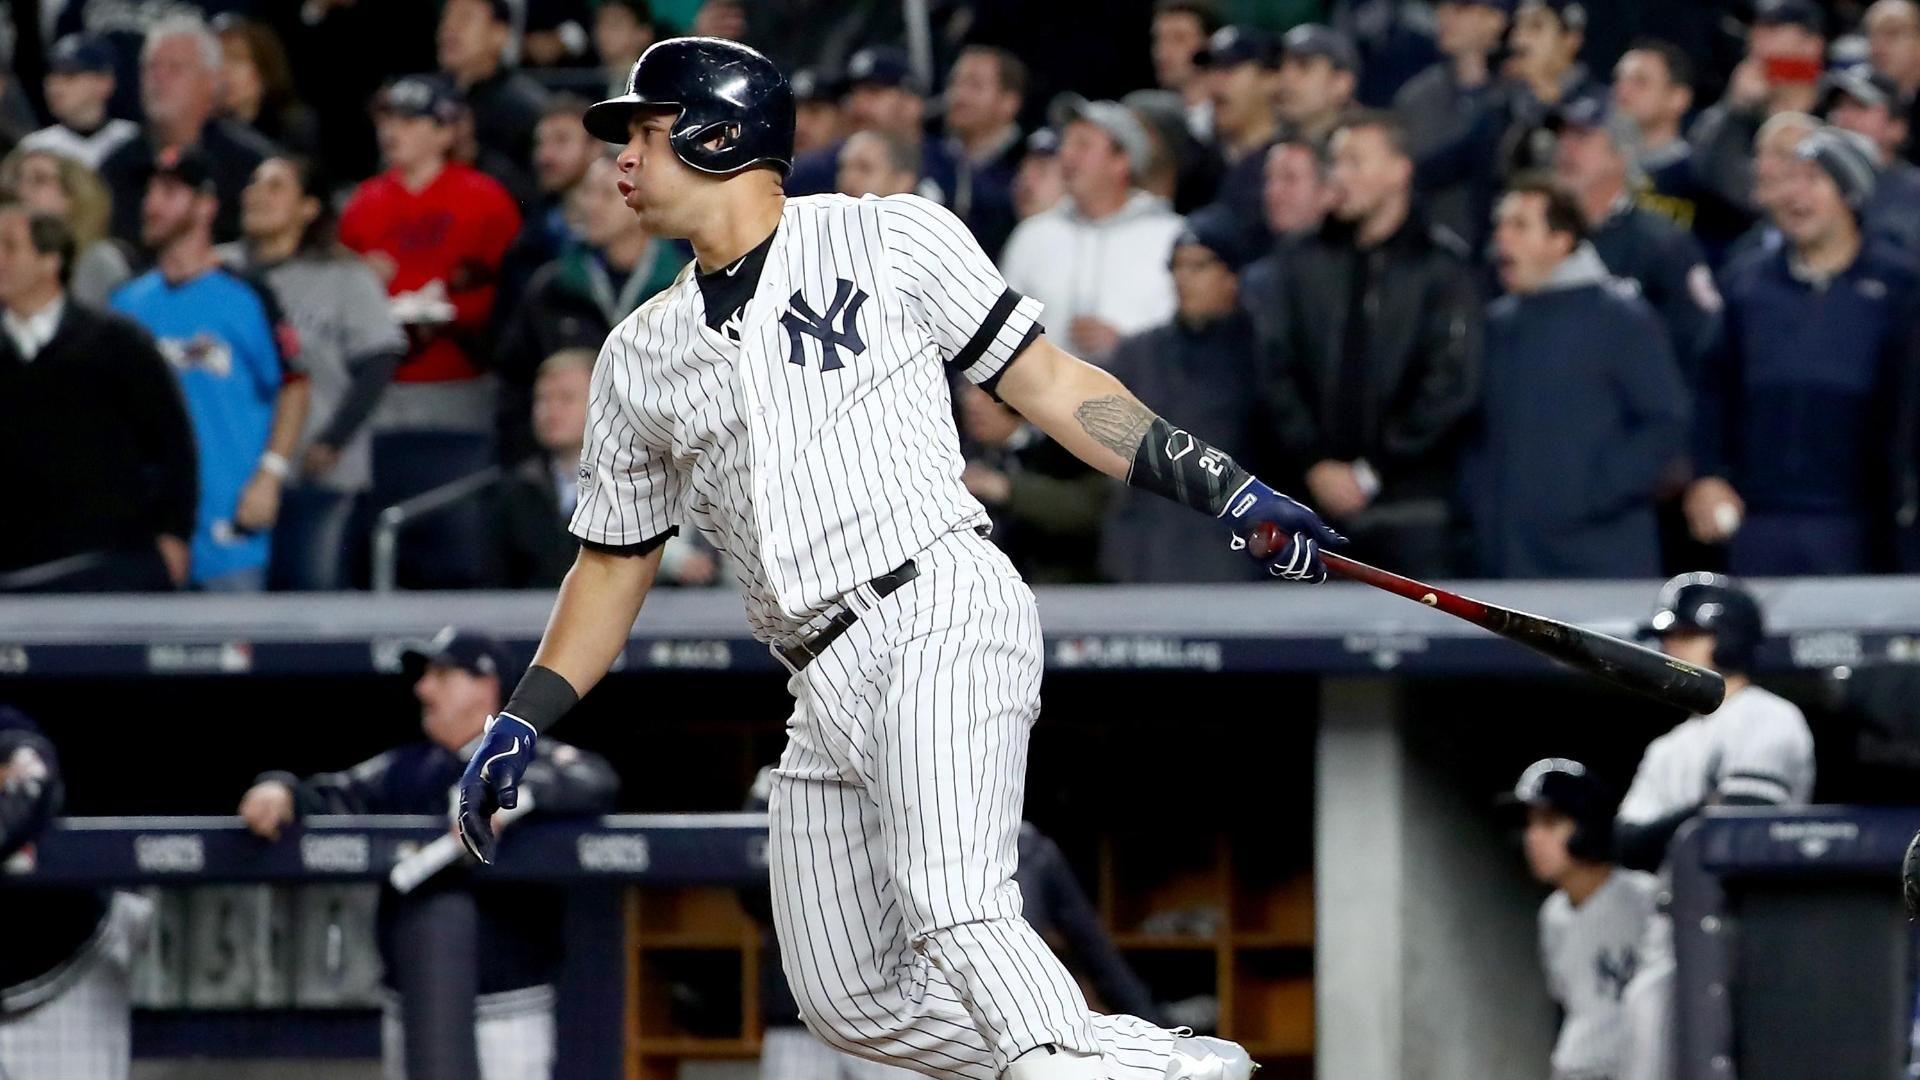 Sanchez gives Yanks' lead with clutch double